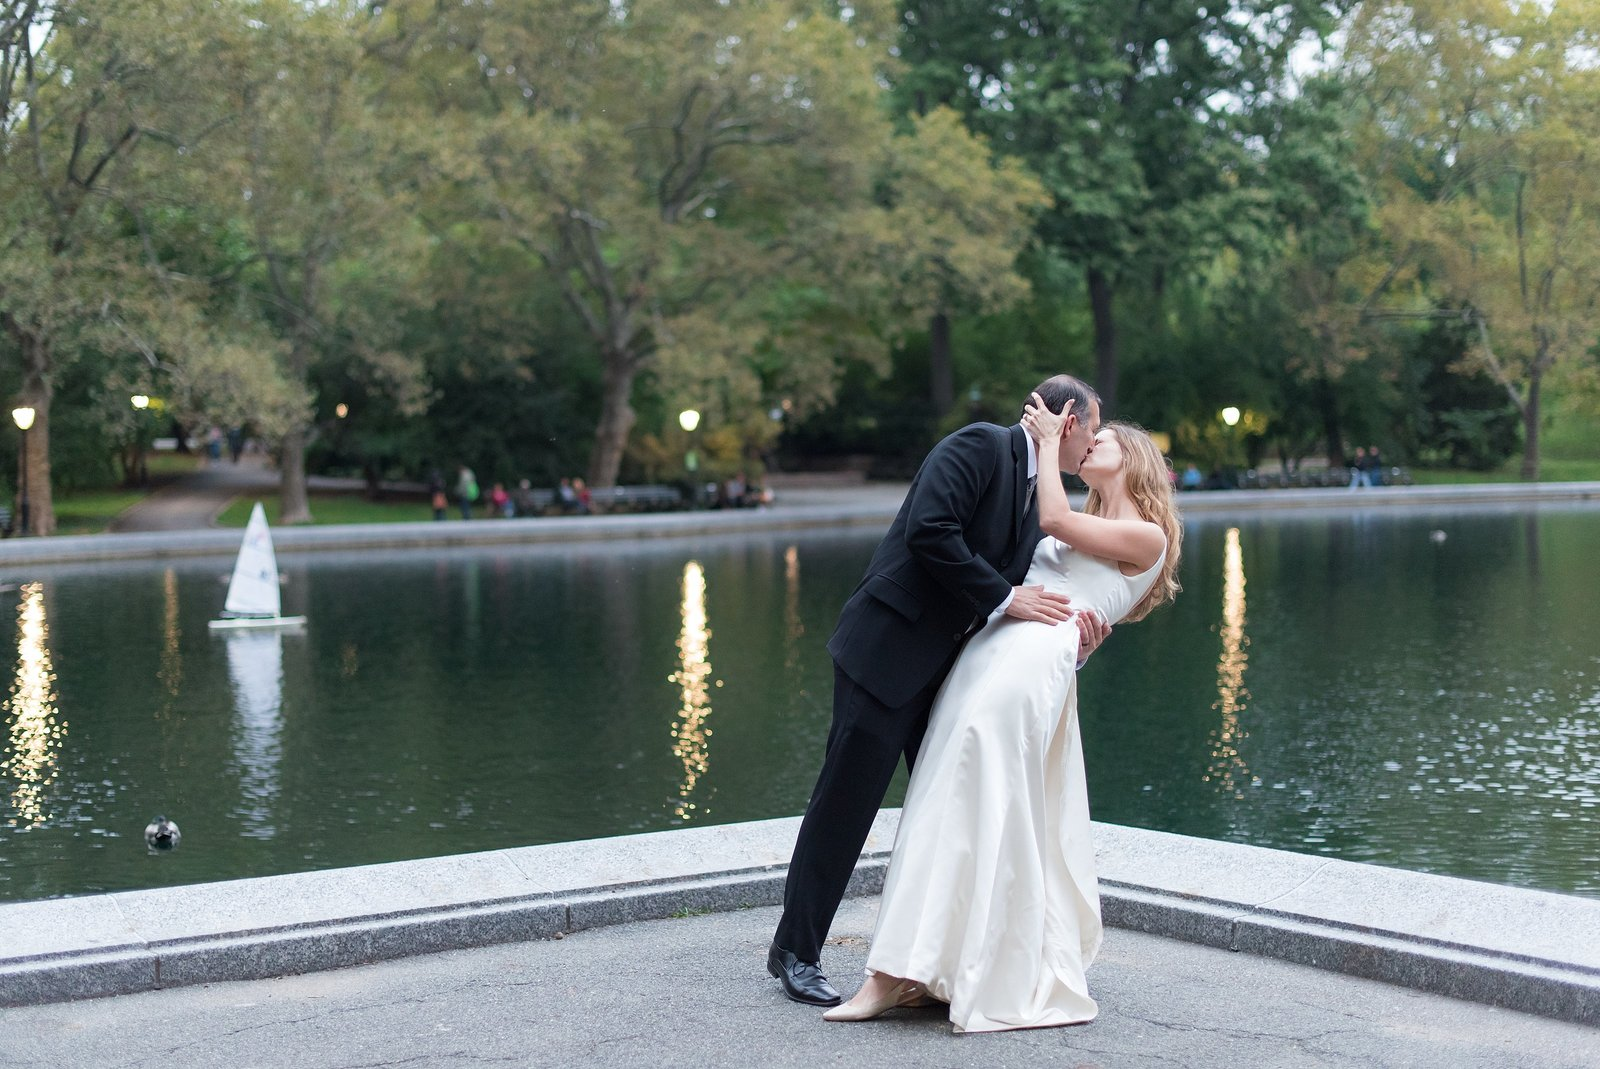 Groom dipping and Kissing Bride in front of pond with little boats at Conservatory Water in Central Park, New York City Photo